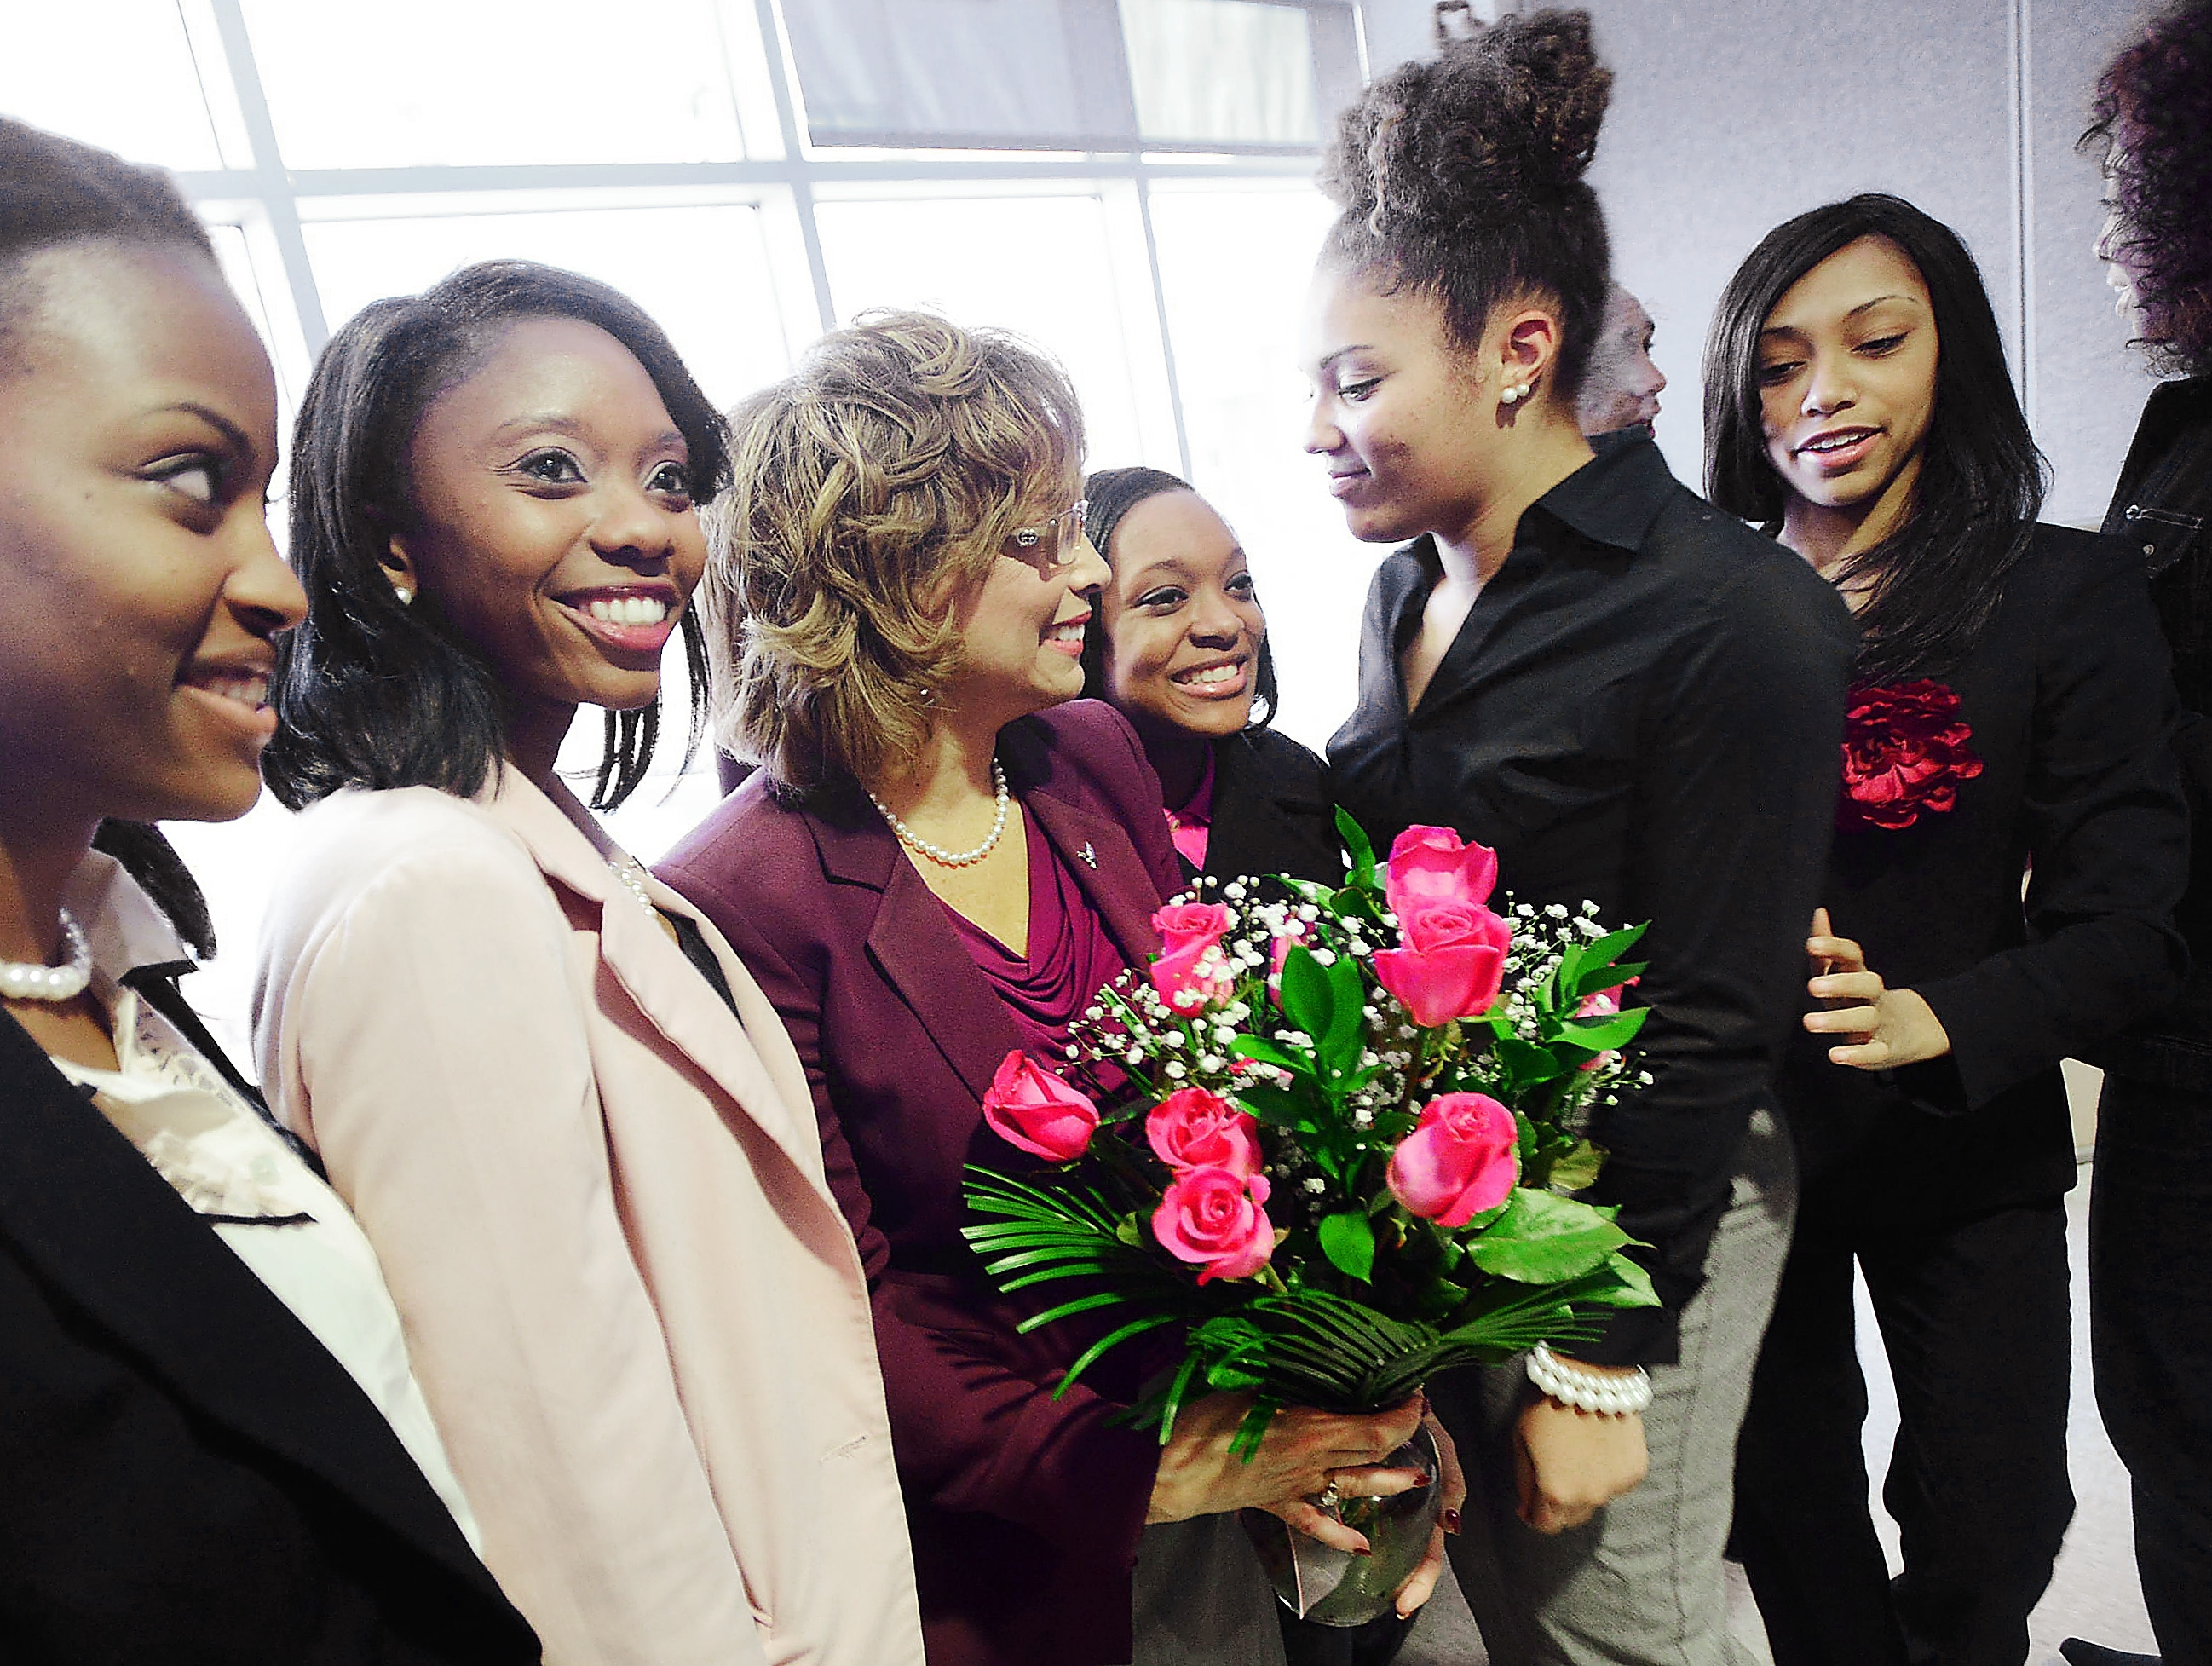 Debra Saunders-White, center, with daughter Elizabeth Paige, right, receives a bouquet from Alpha Kappa Alpha Sorority, Inc. members at North Carolina Central University on Friday, Feb. 8, 2013. Saunders-White is deputy assistant secretary for higher education with the U.S. Department of Education and has been named the 11th chancellor of N.C. Central University. Saunders-White has been selected as the 11th chancellor of North Carolina Central University and will assume her new duties June 1. (AP Photo/The Herald-Sun, Bernard Thomas) MANDATORY CREDIT |